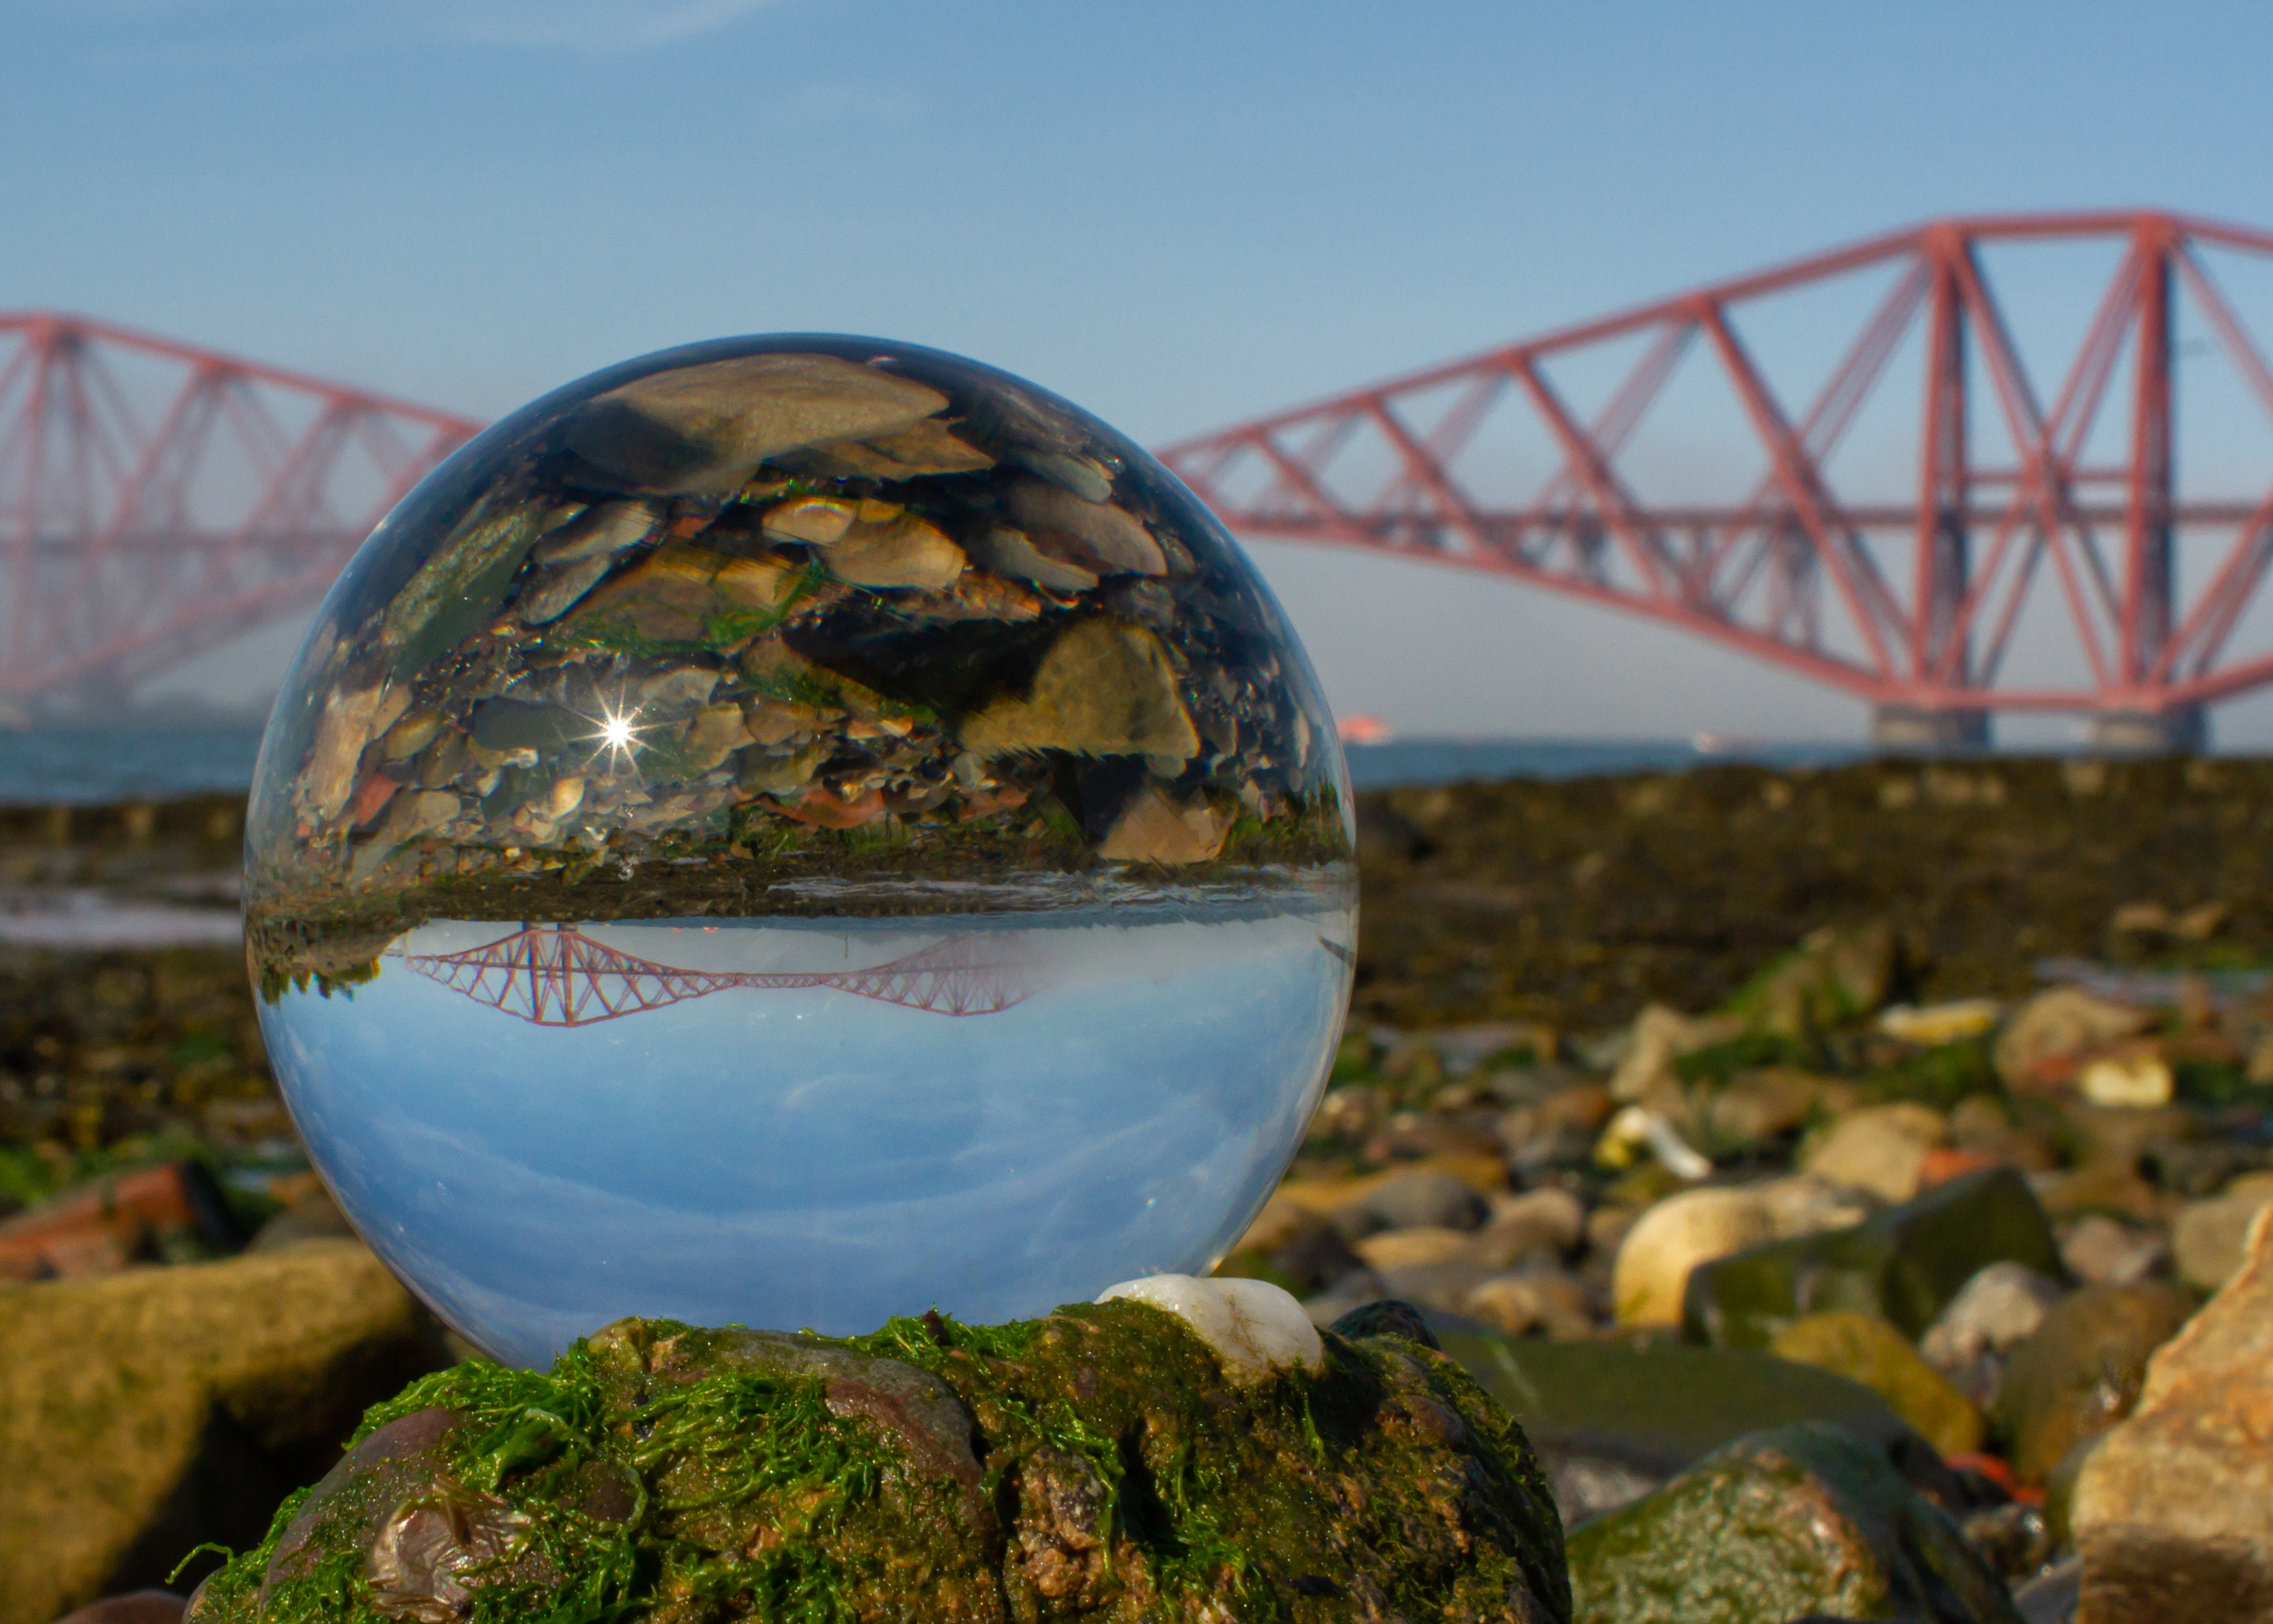 Forth Rail Bridge & Sphere